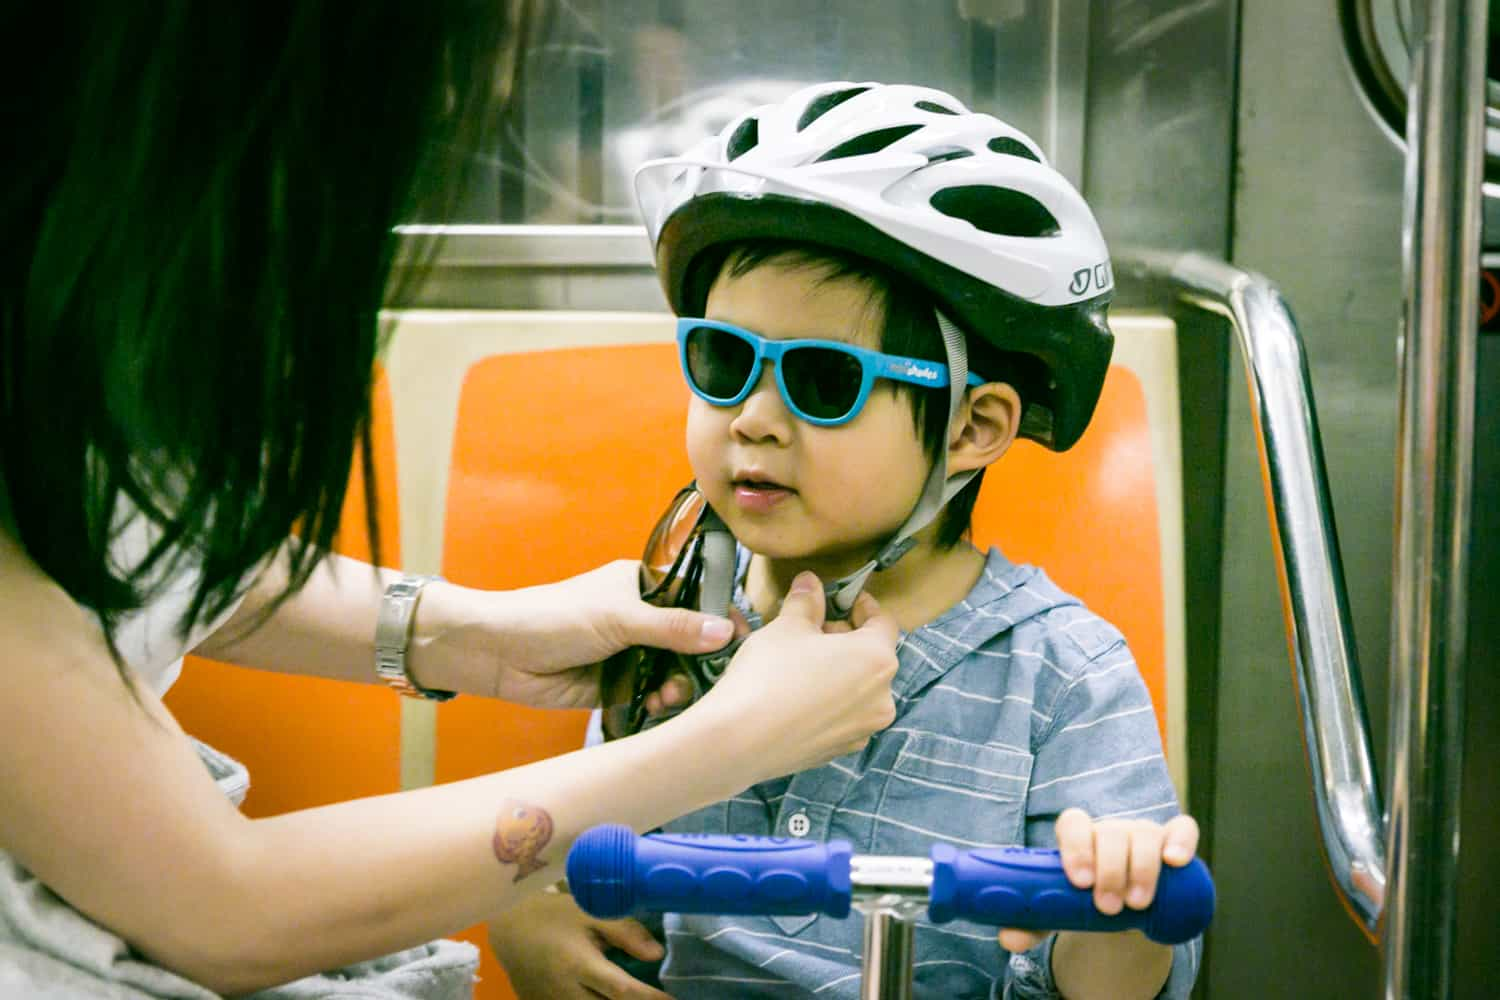 Mother attaching helmet on little boy wearing sunglasses